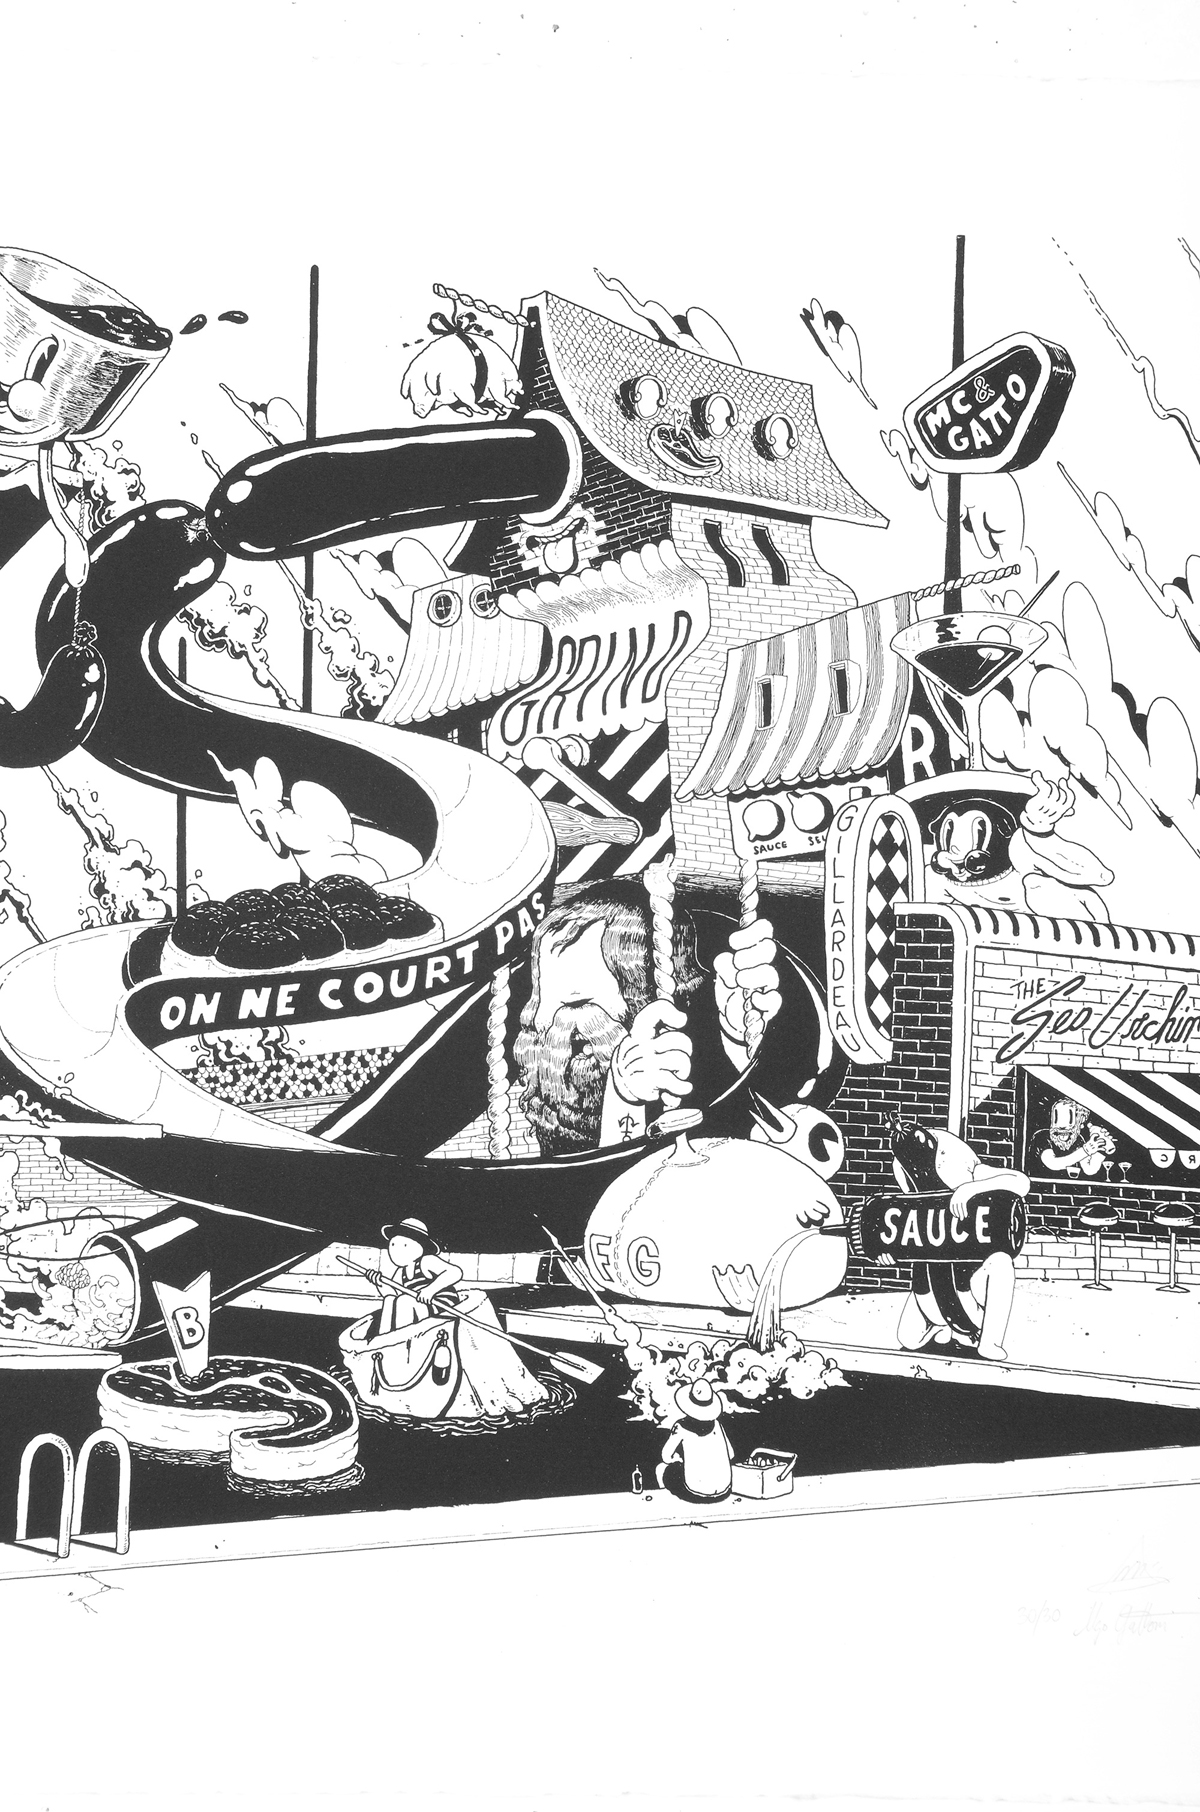 ugo-gattoni-mcbess-sweetbread-lithography-oeuvre-illustration-fine-art-print-collaboration-edition-soldart-61-detail-piscine-bouffe-architecture-design